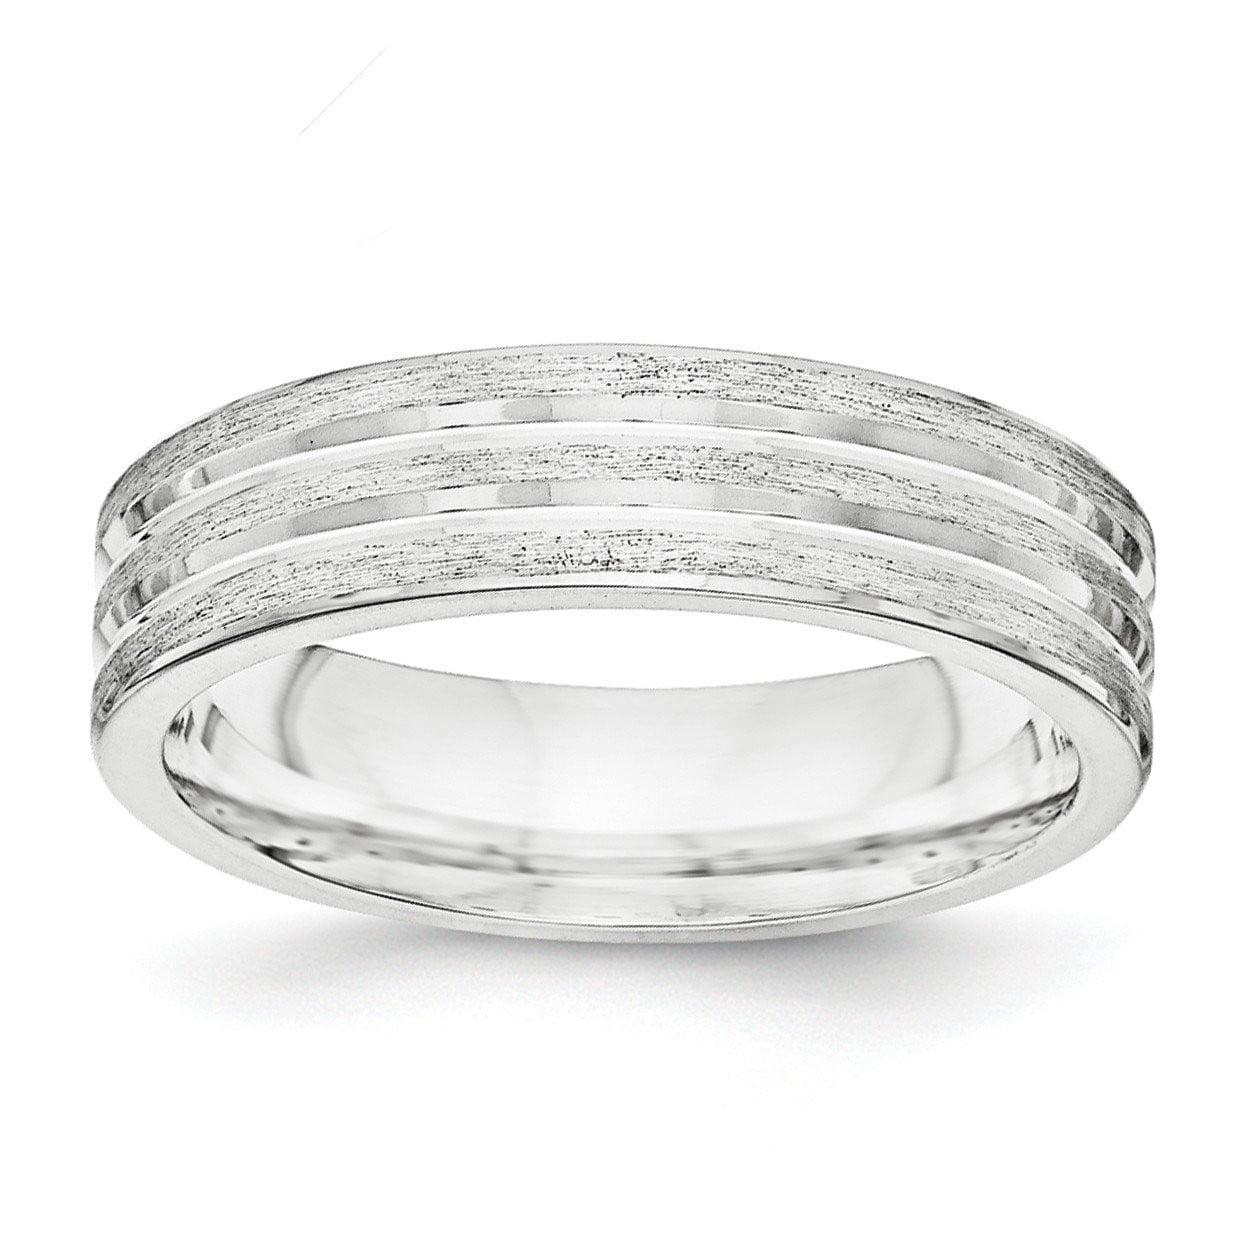 SS 6mm Brushed Fancy Band Size 12.5 - shirin-diamonds